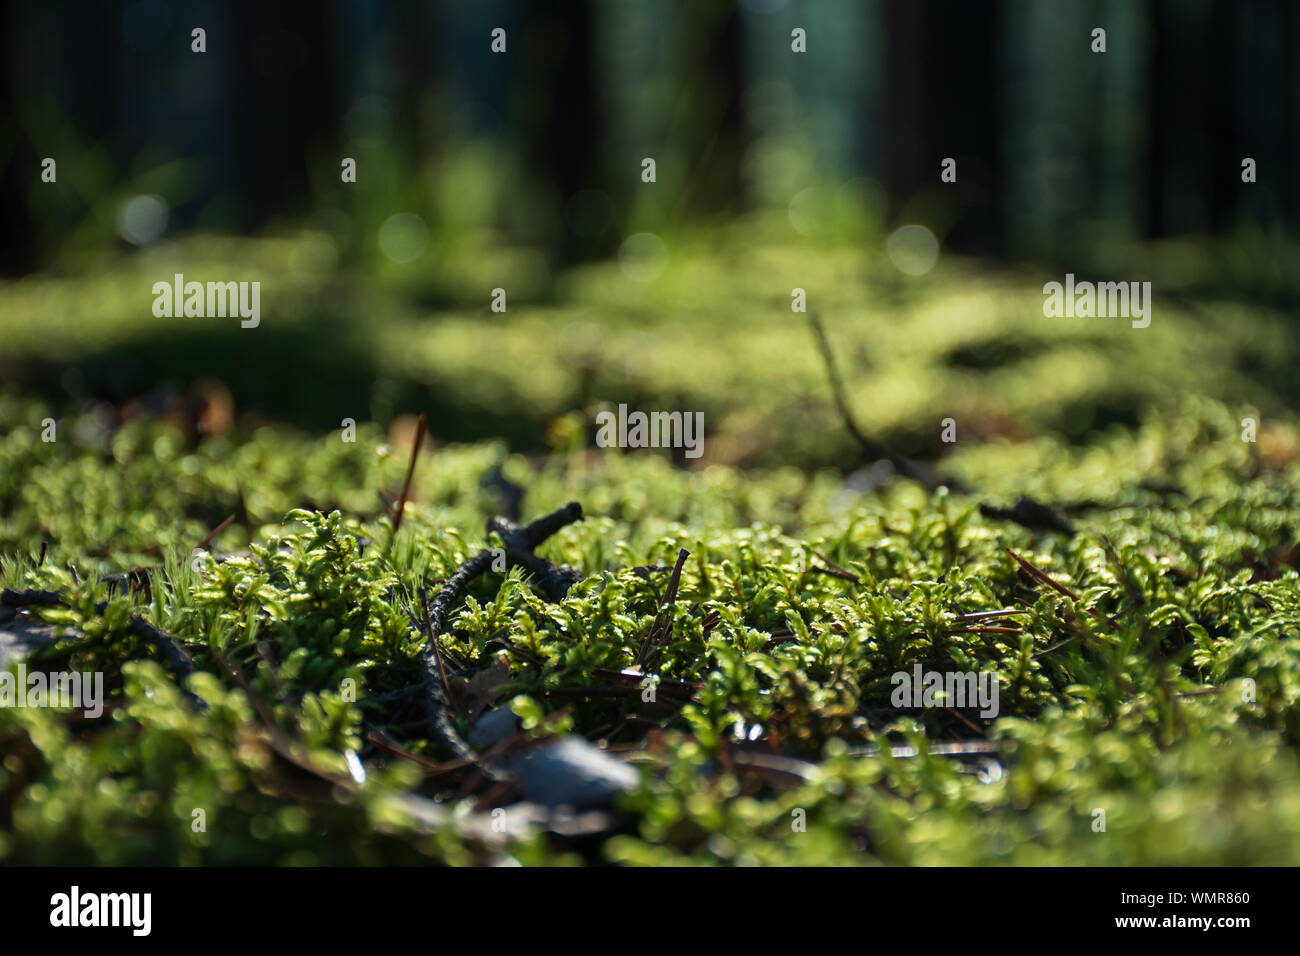 Beautiful bright green moss on the floor in the forest with trees, macro view, close up, nature Stock Photo